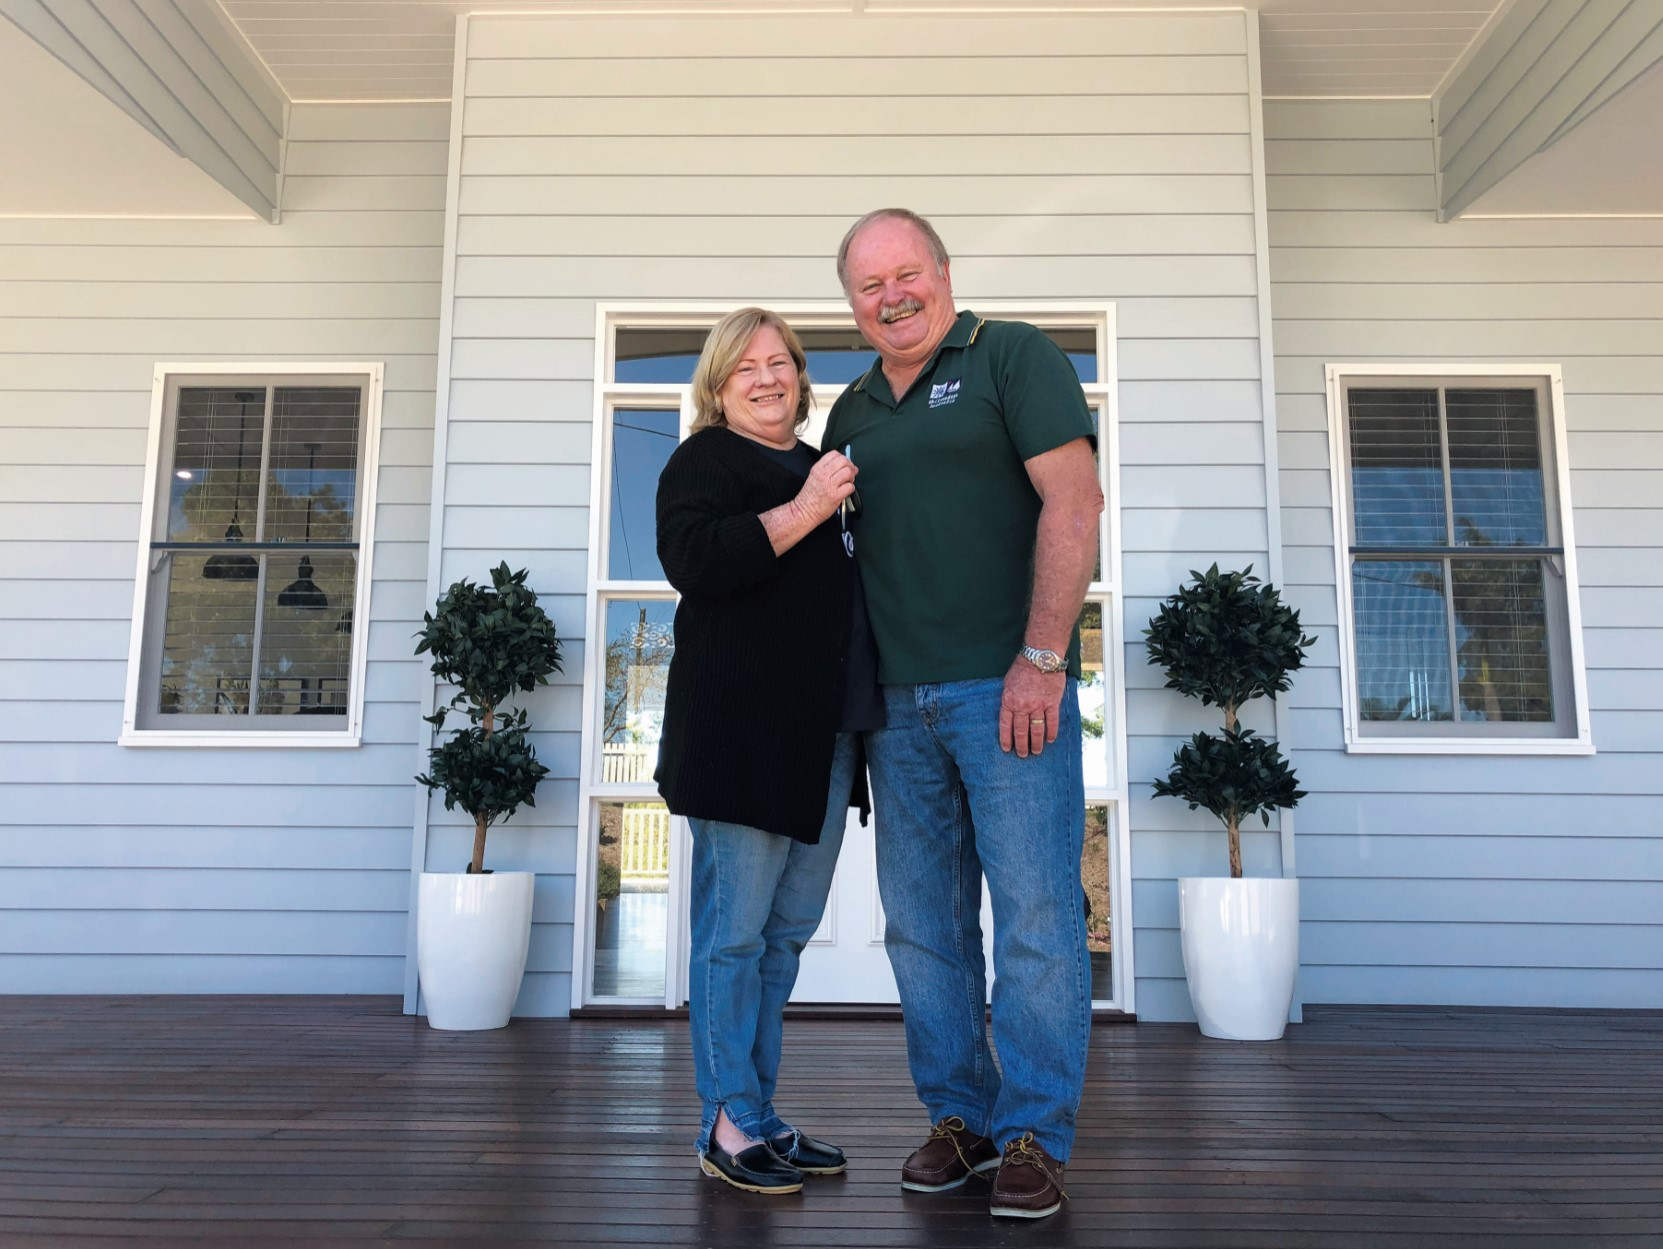 68th Anniversary Prize Home Winners Retire in Luxury